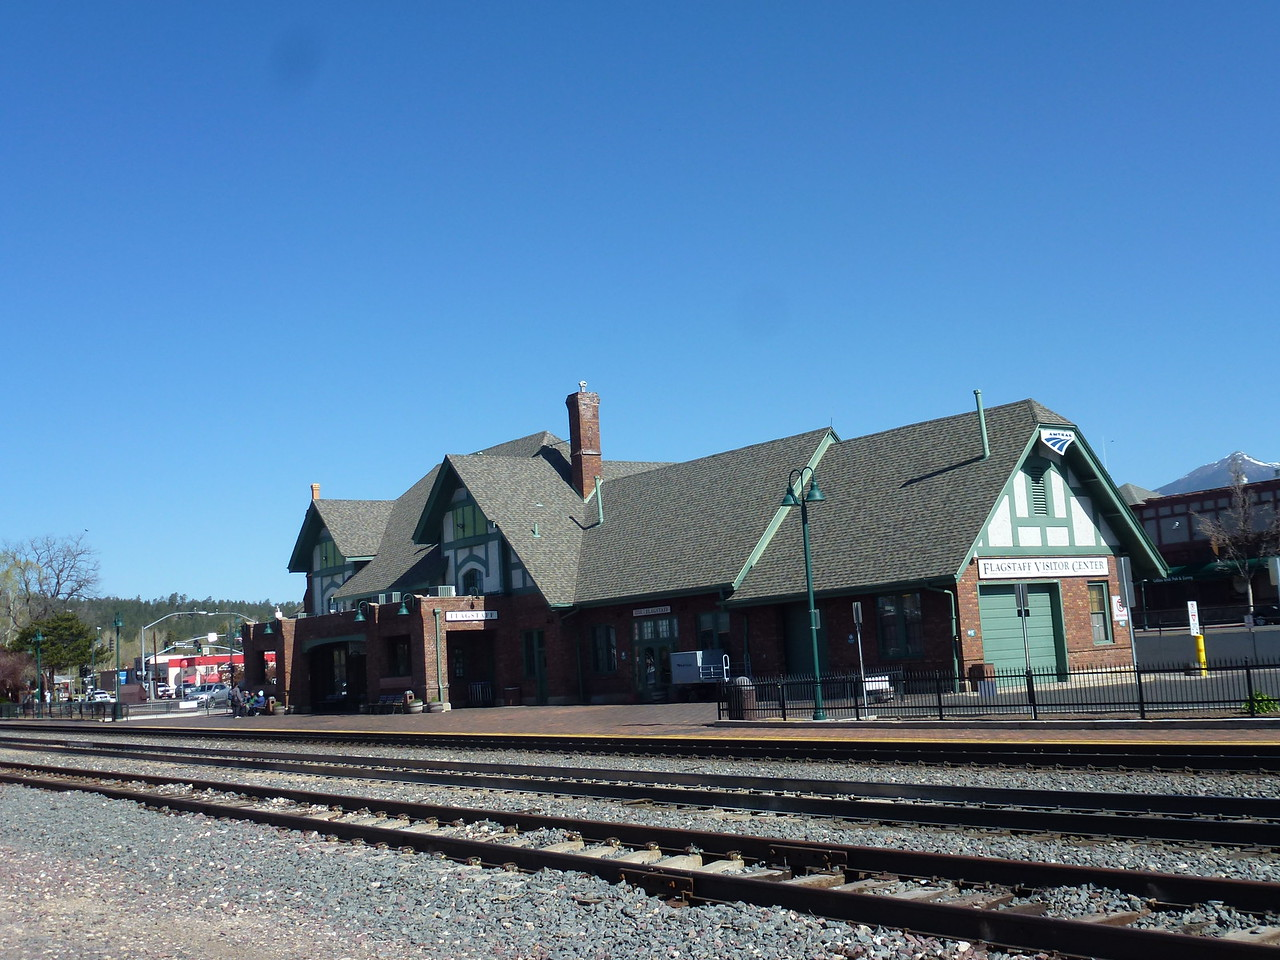 Iconic train station in Flagstaff